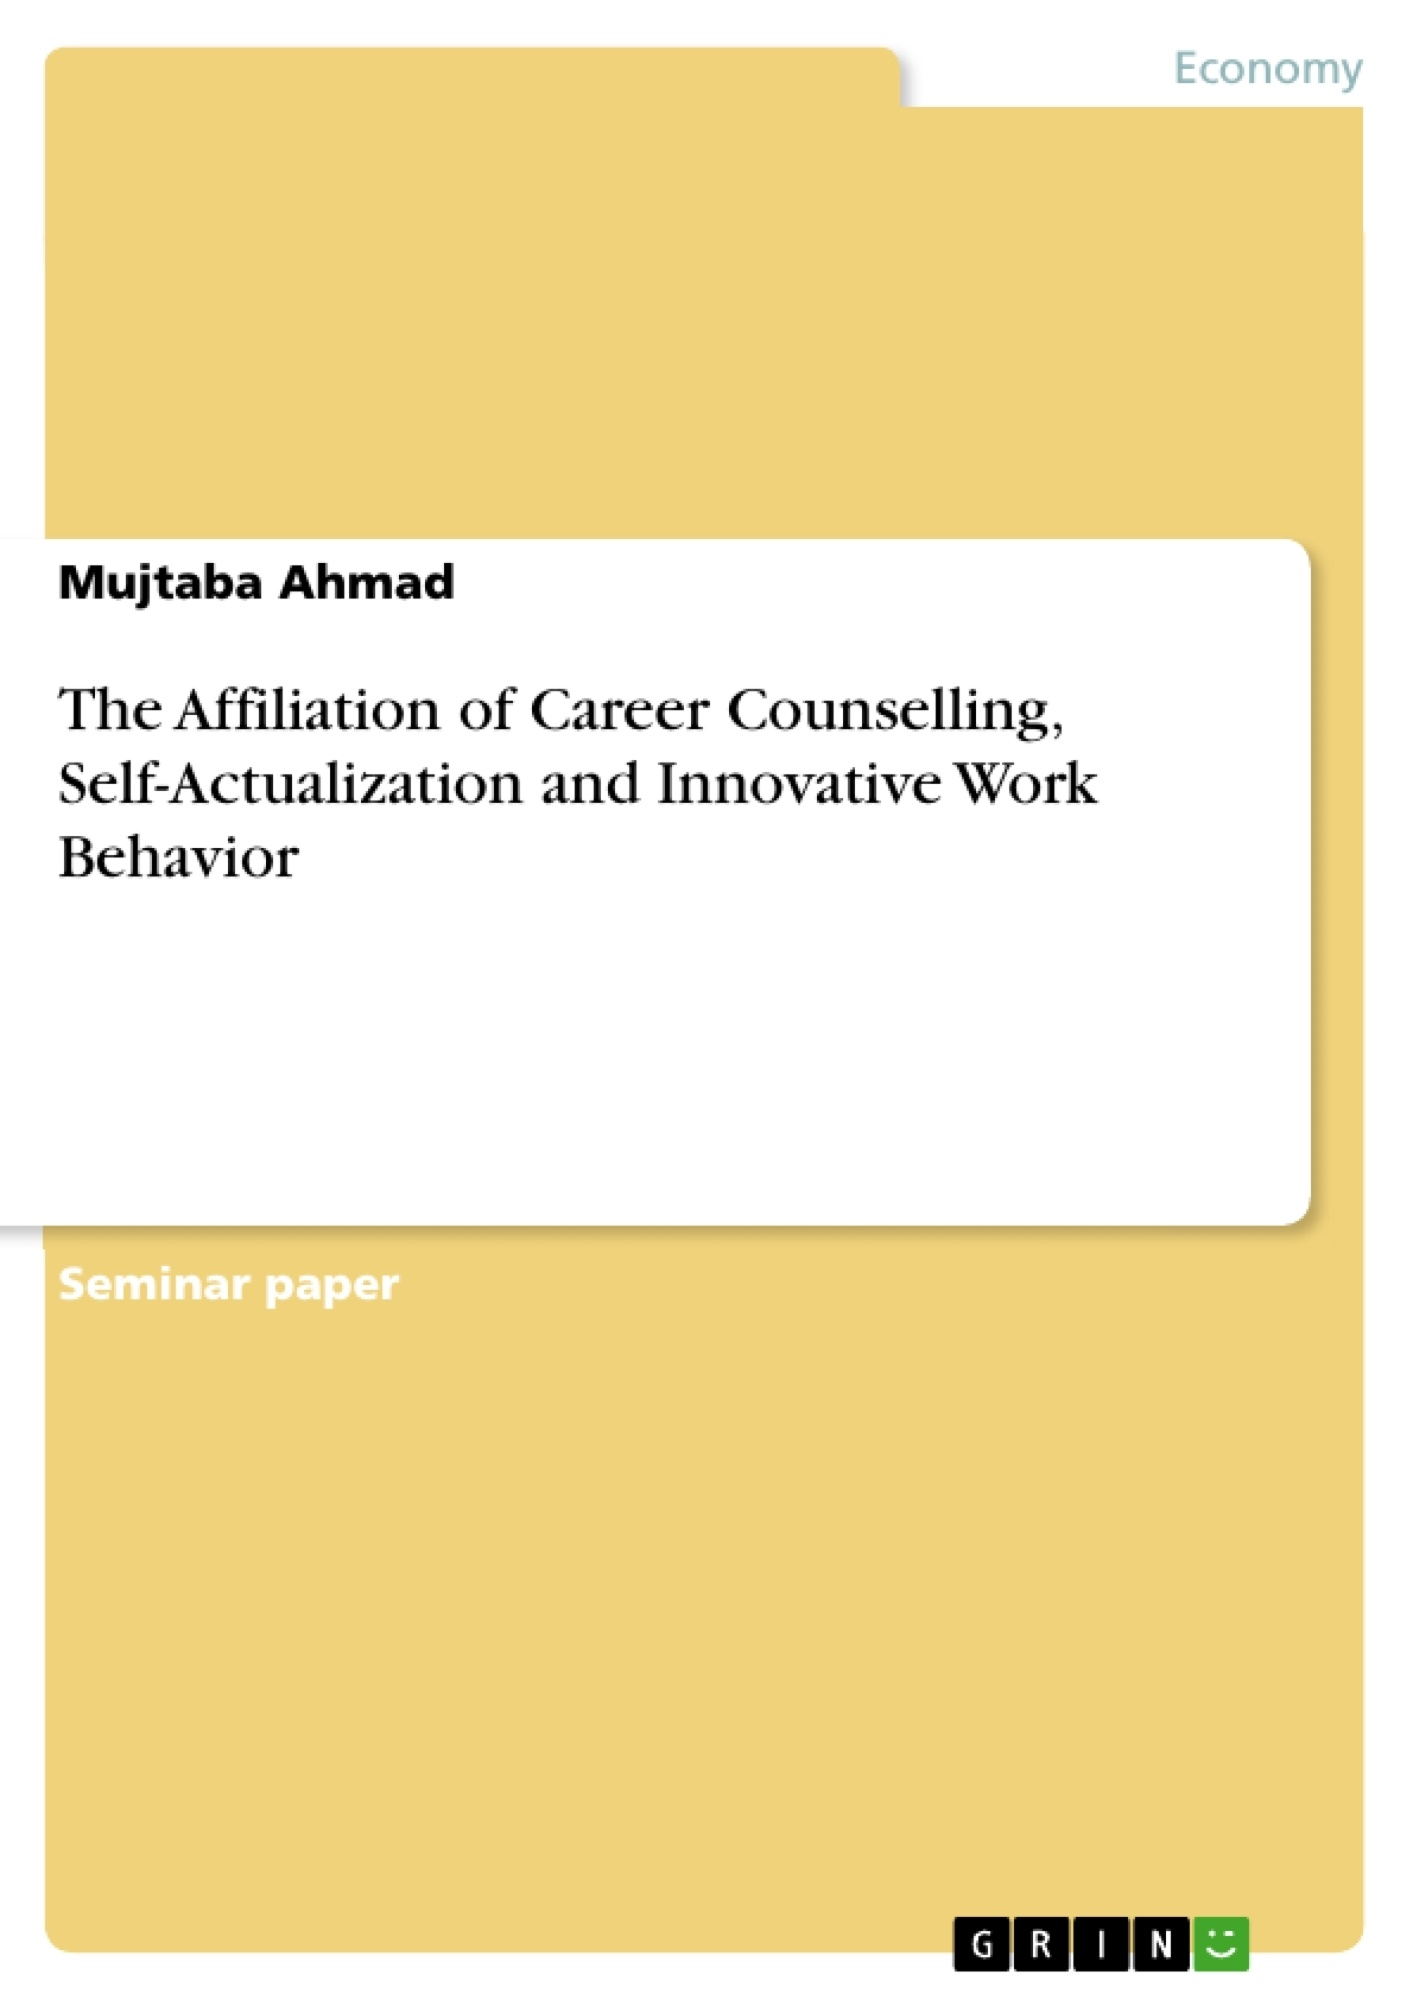 Title: The Affiliation of Career Counselling, Self-Actualization and Innovative Work Behavior